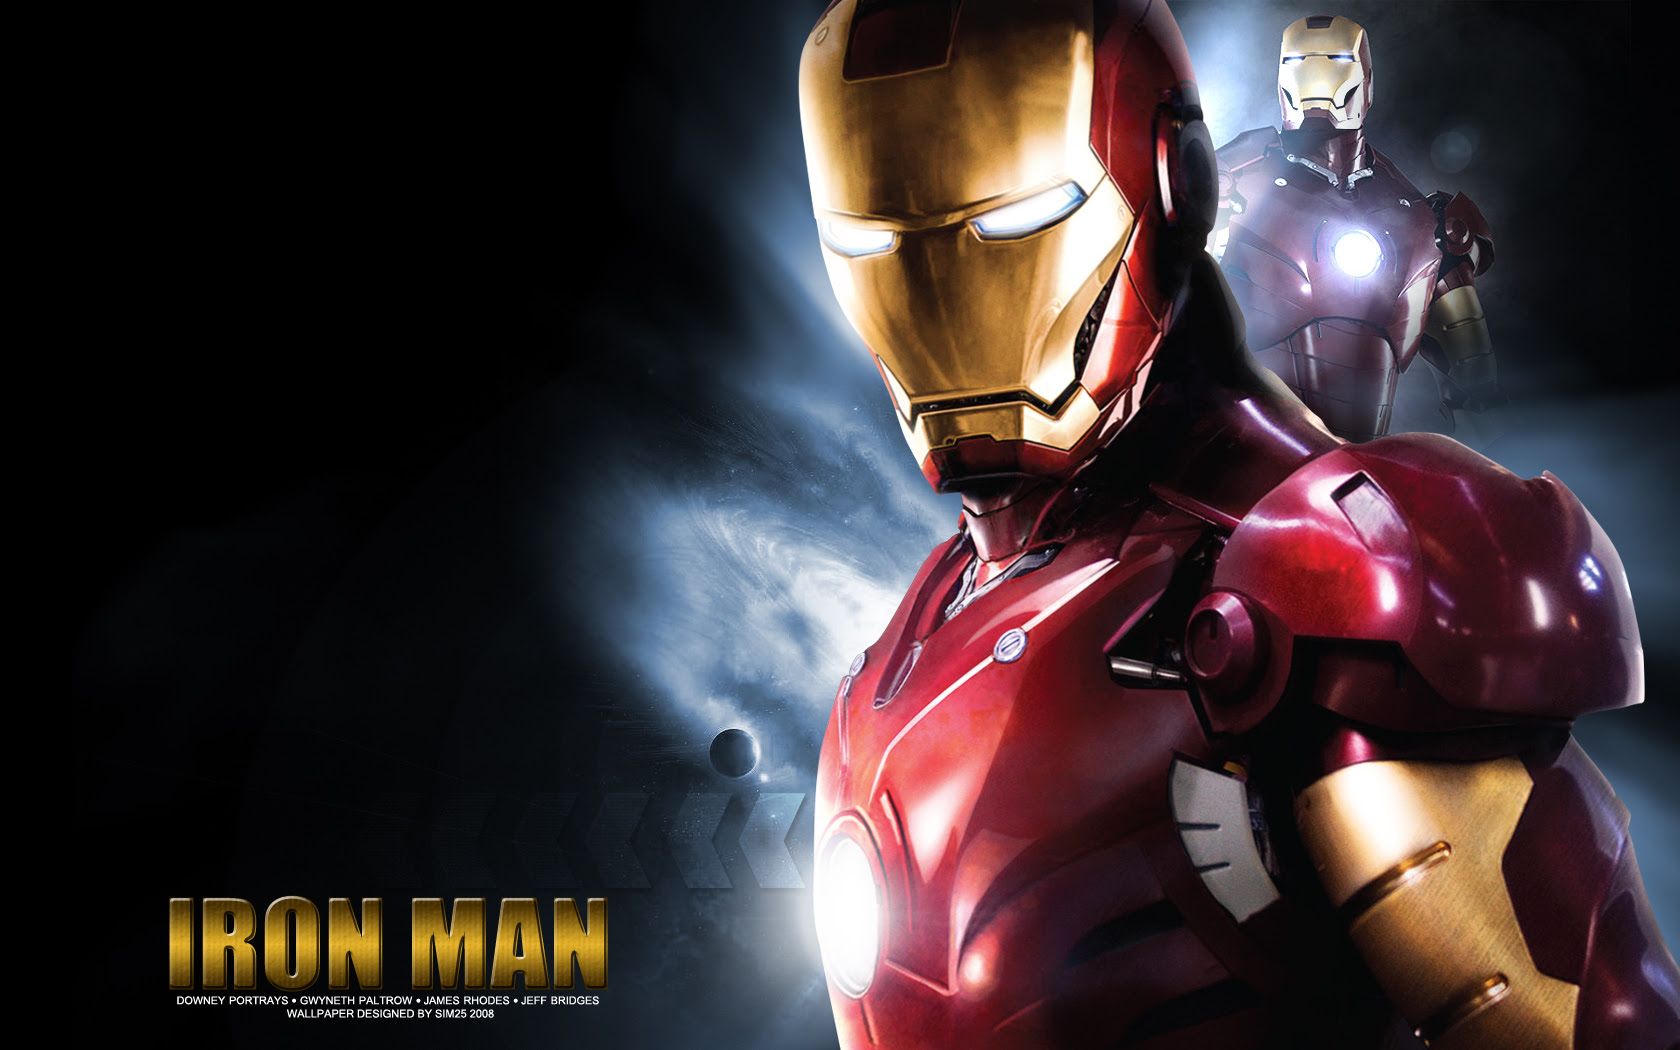 Iron Man Iron Man 3 Wallpaper 31780180 Fanpop